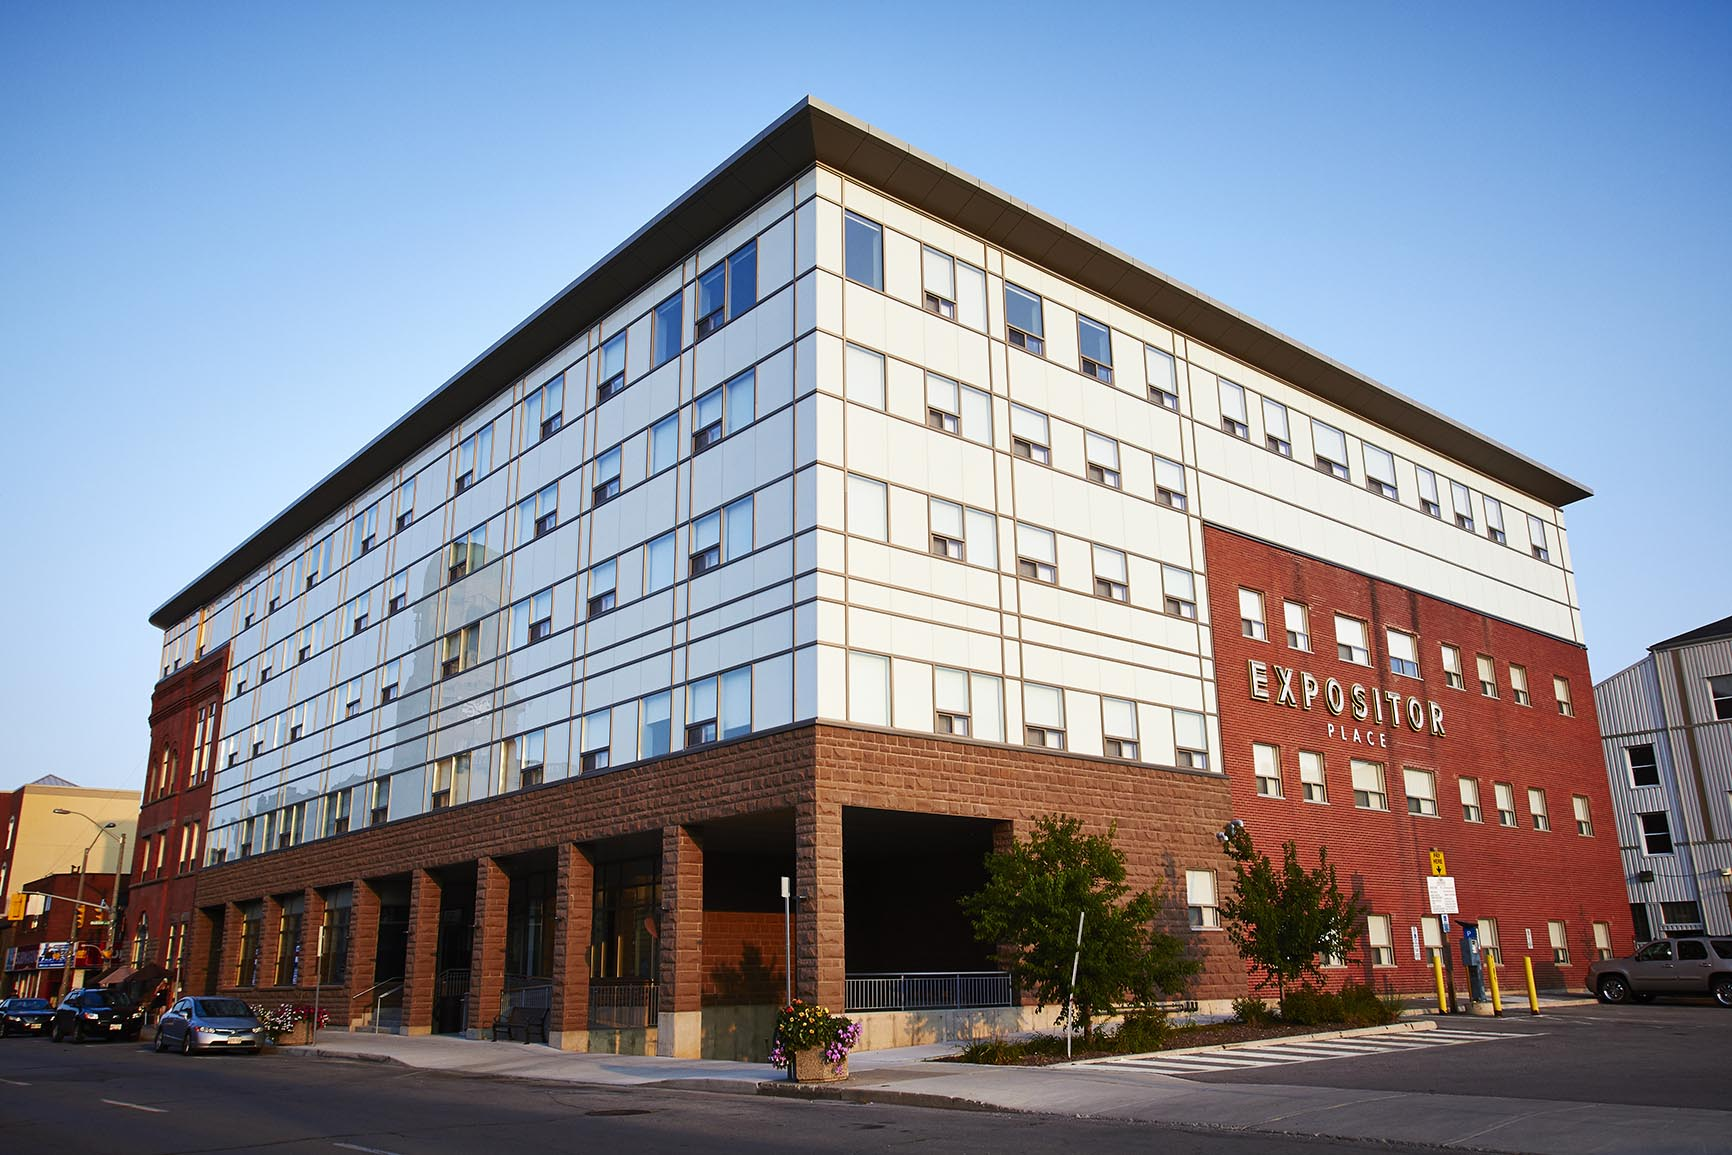 Expositor Place – Brantford, ON